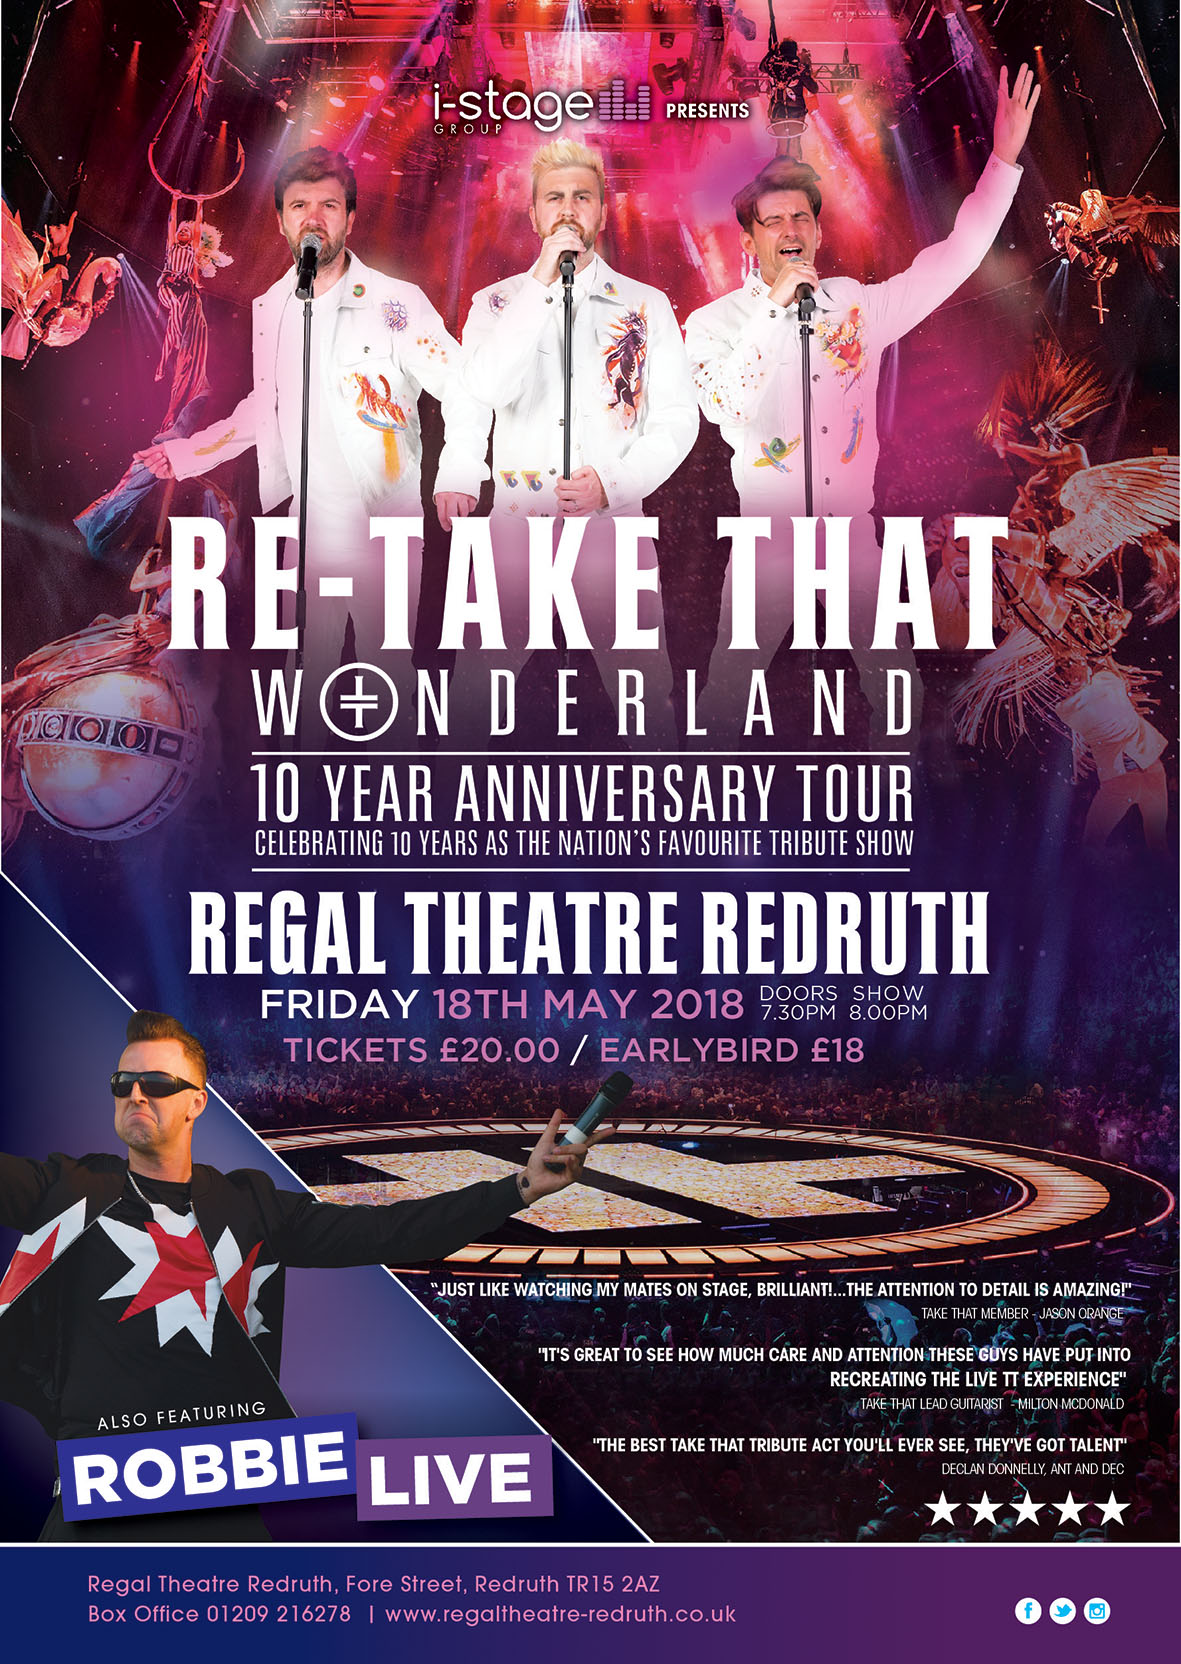 RE-TAKE THAT :WONDERLAND TOUR